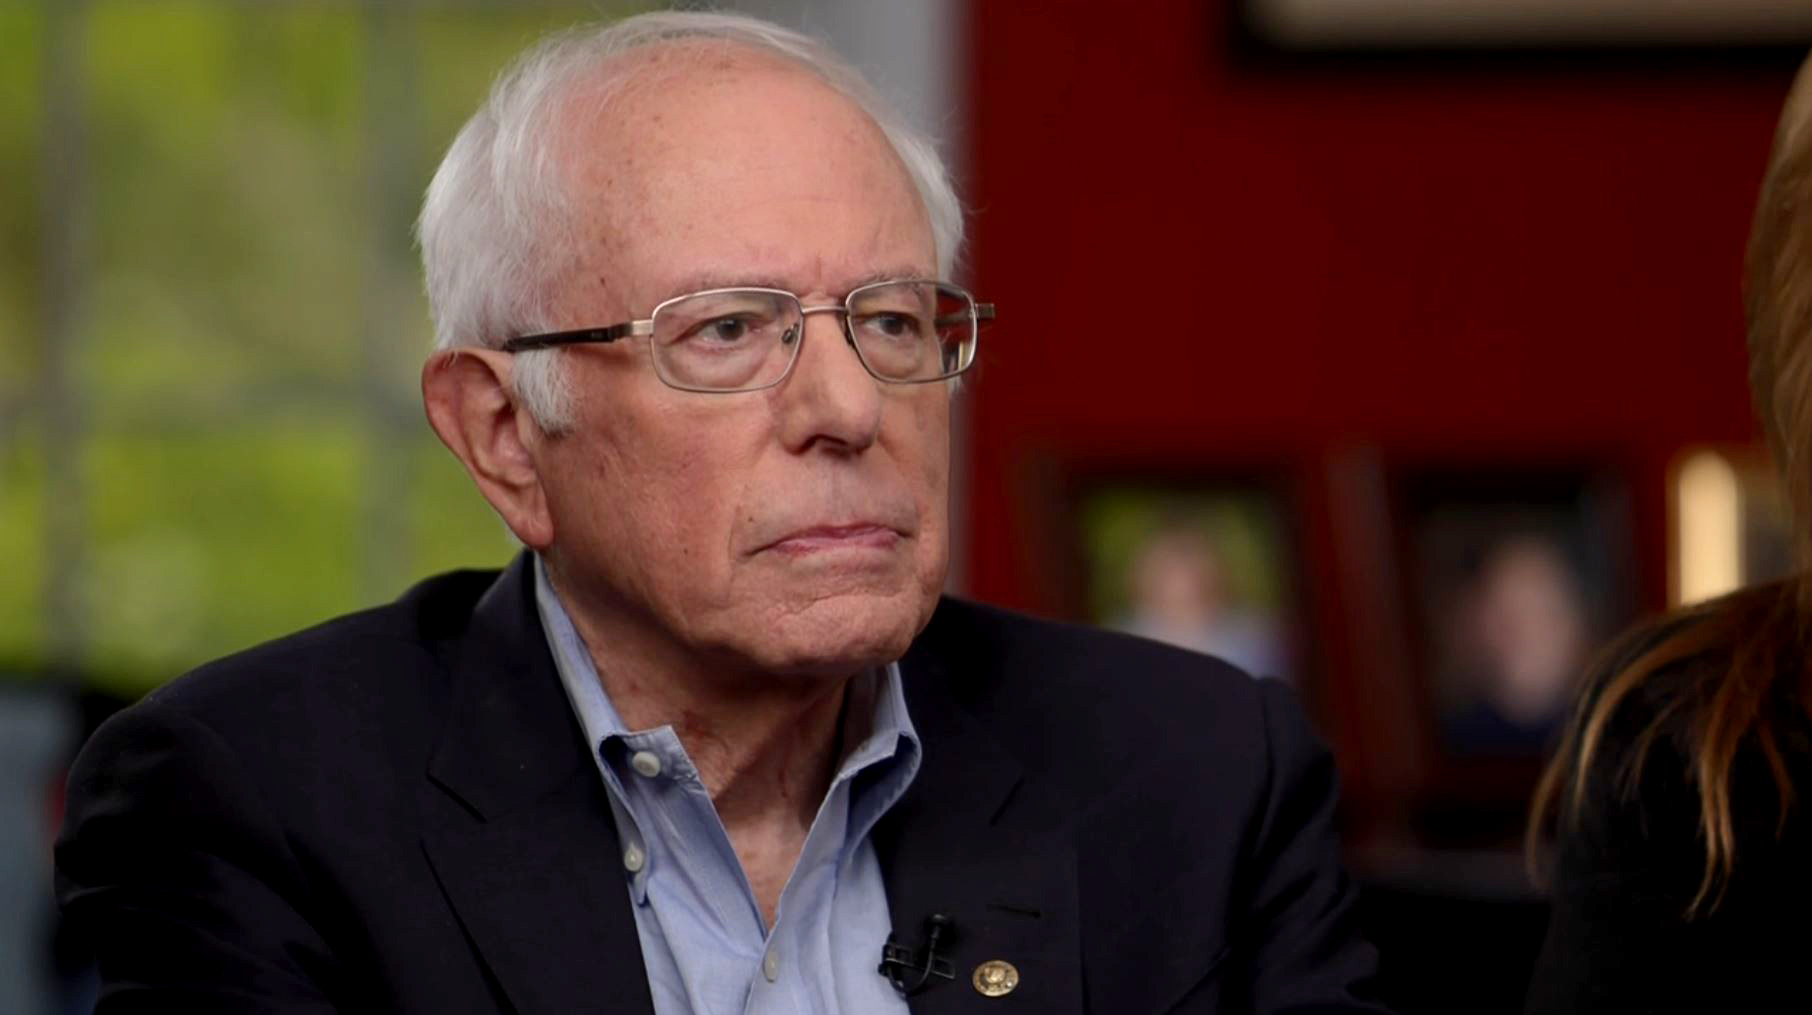 Sanders-says-he-'misspoke'-about-scaling-back-campaign-after-heart-attack